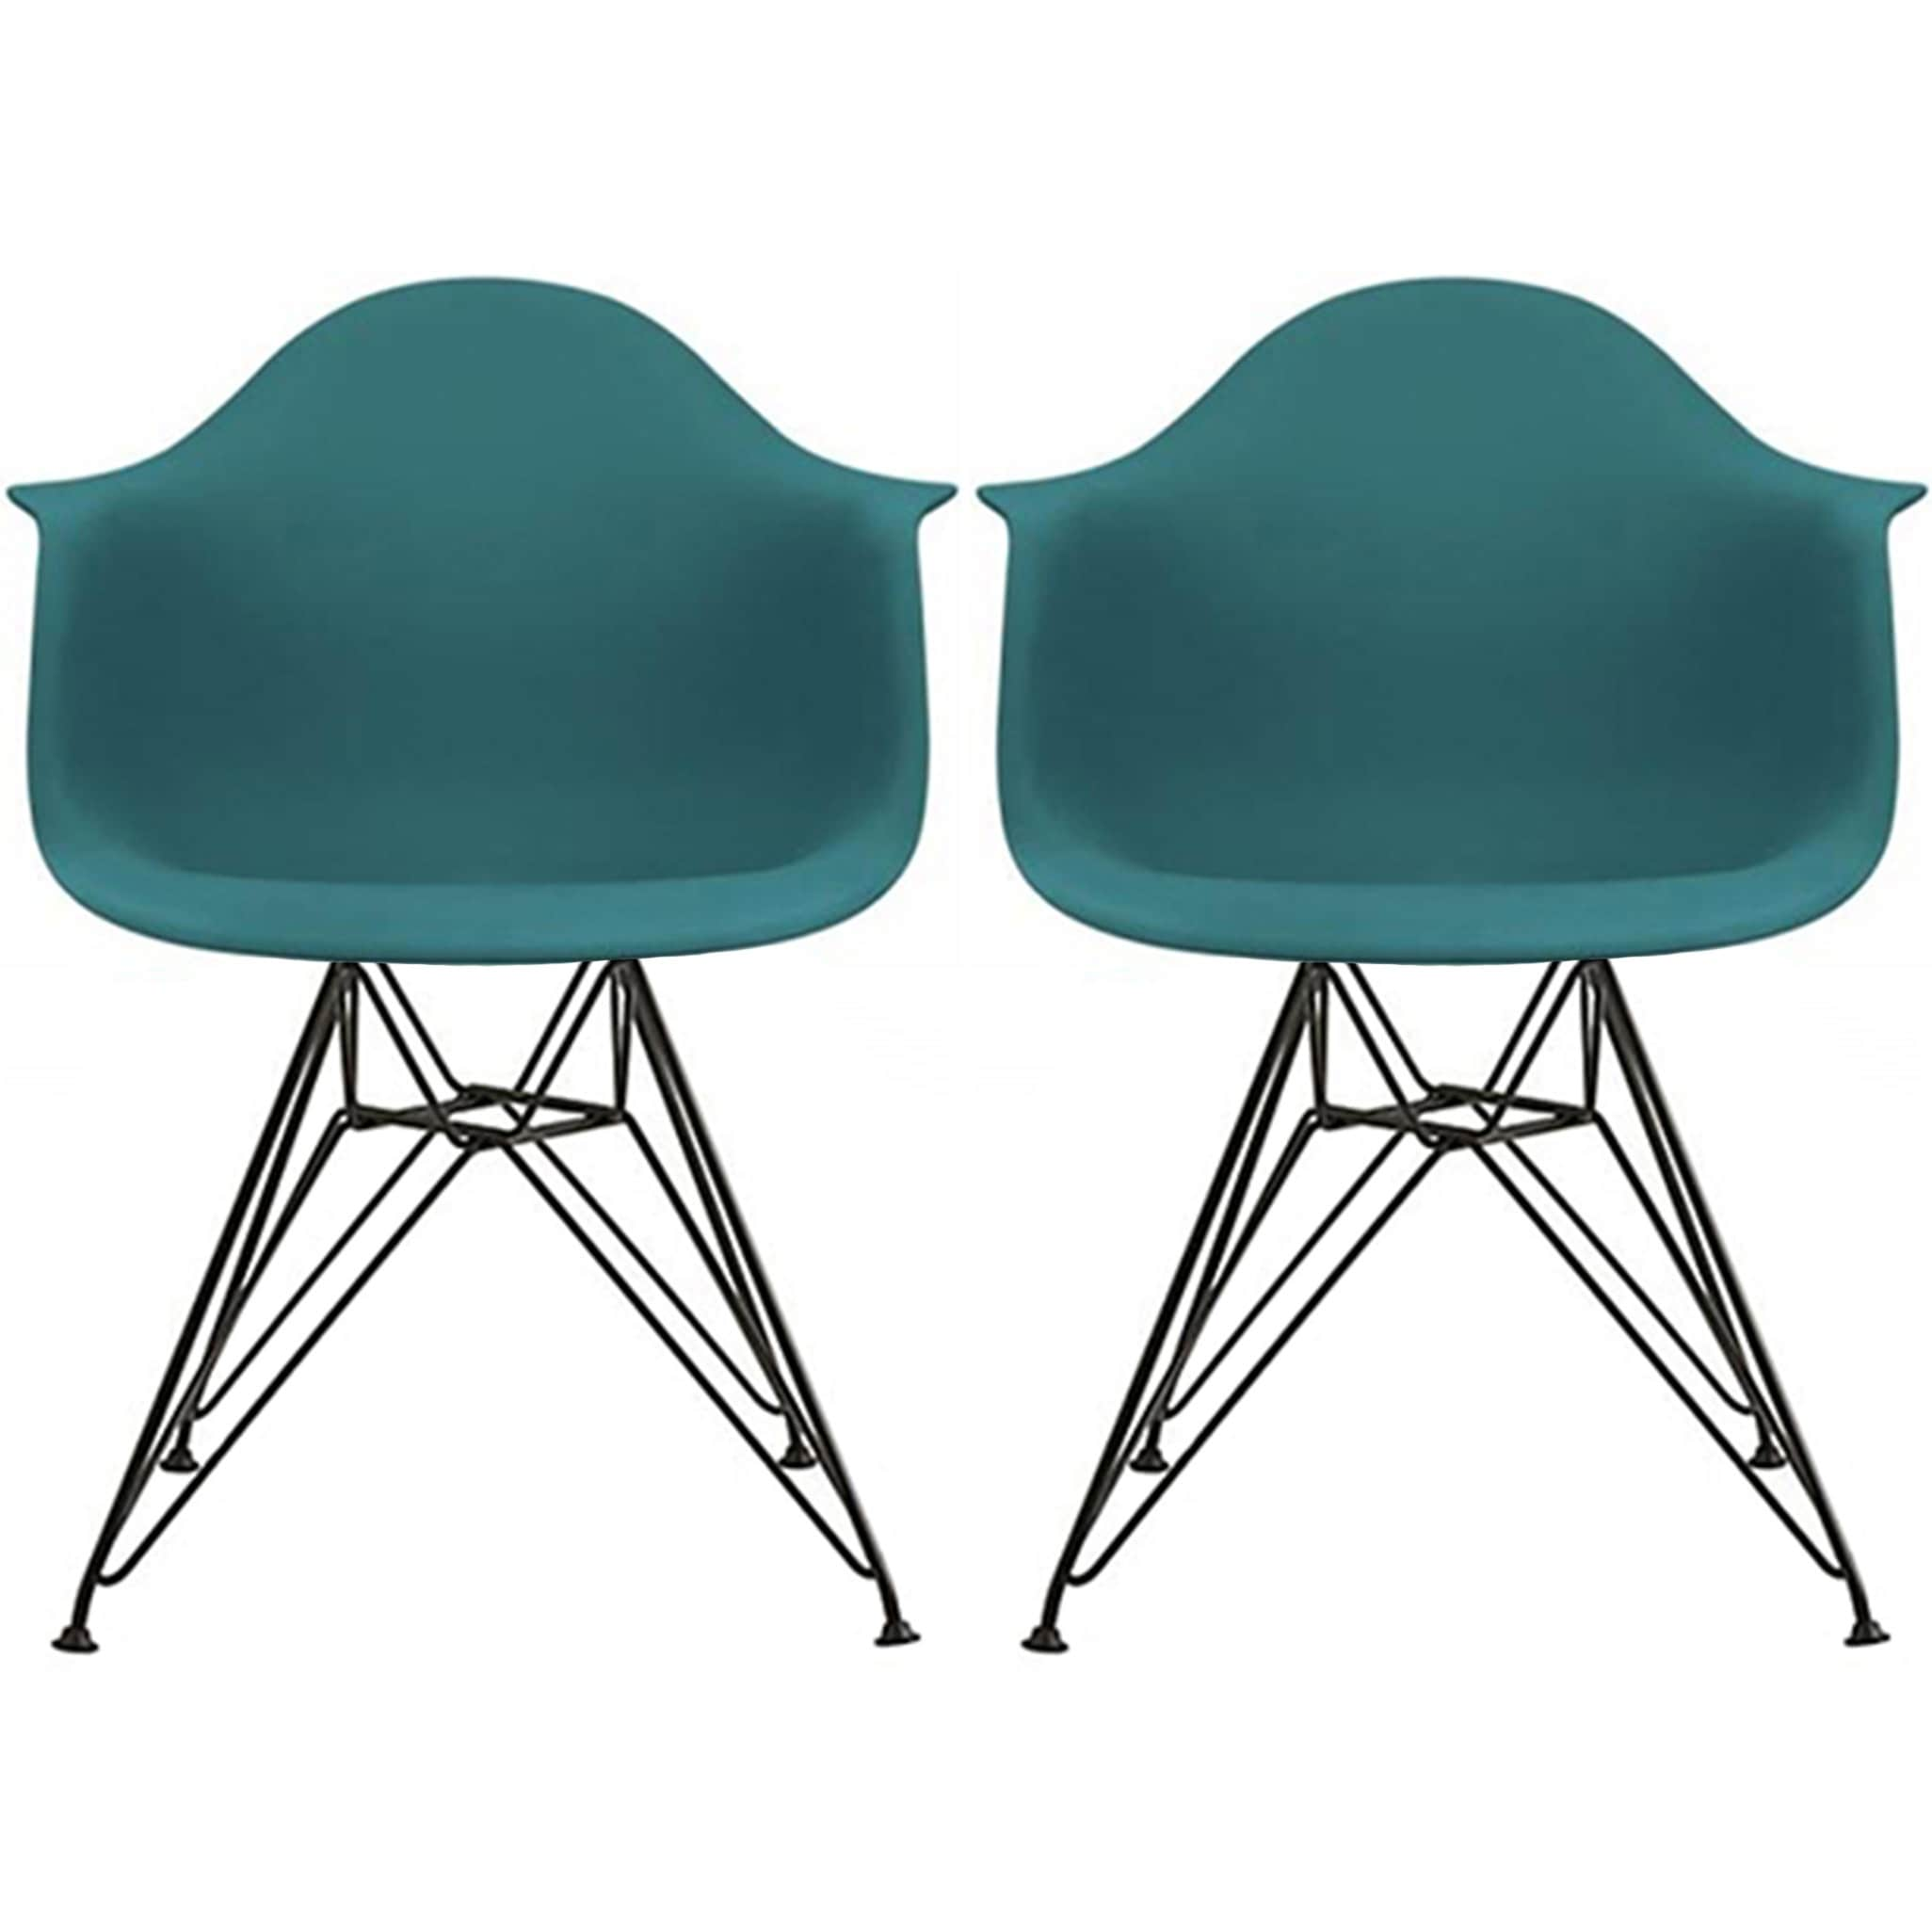 Shop 2xhome Set of 2 Modern Plastic Armchair with Arms Black Eiffel ...